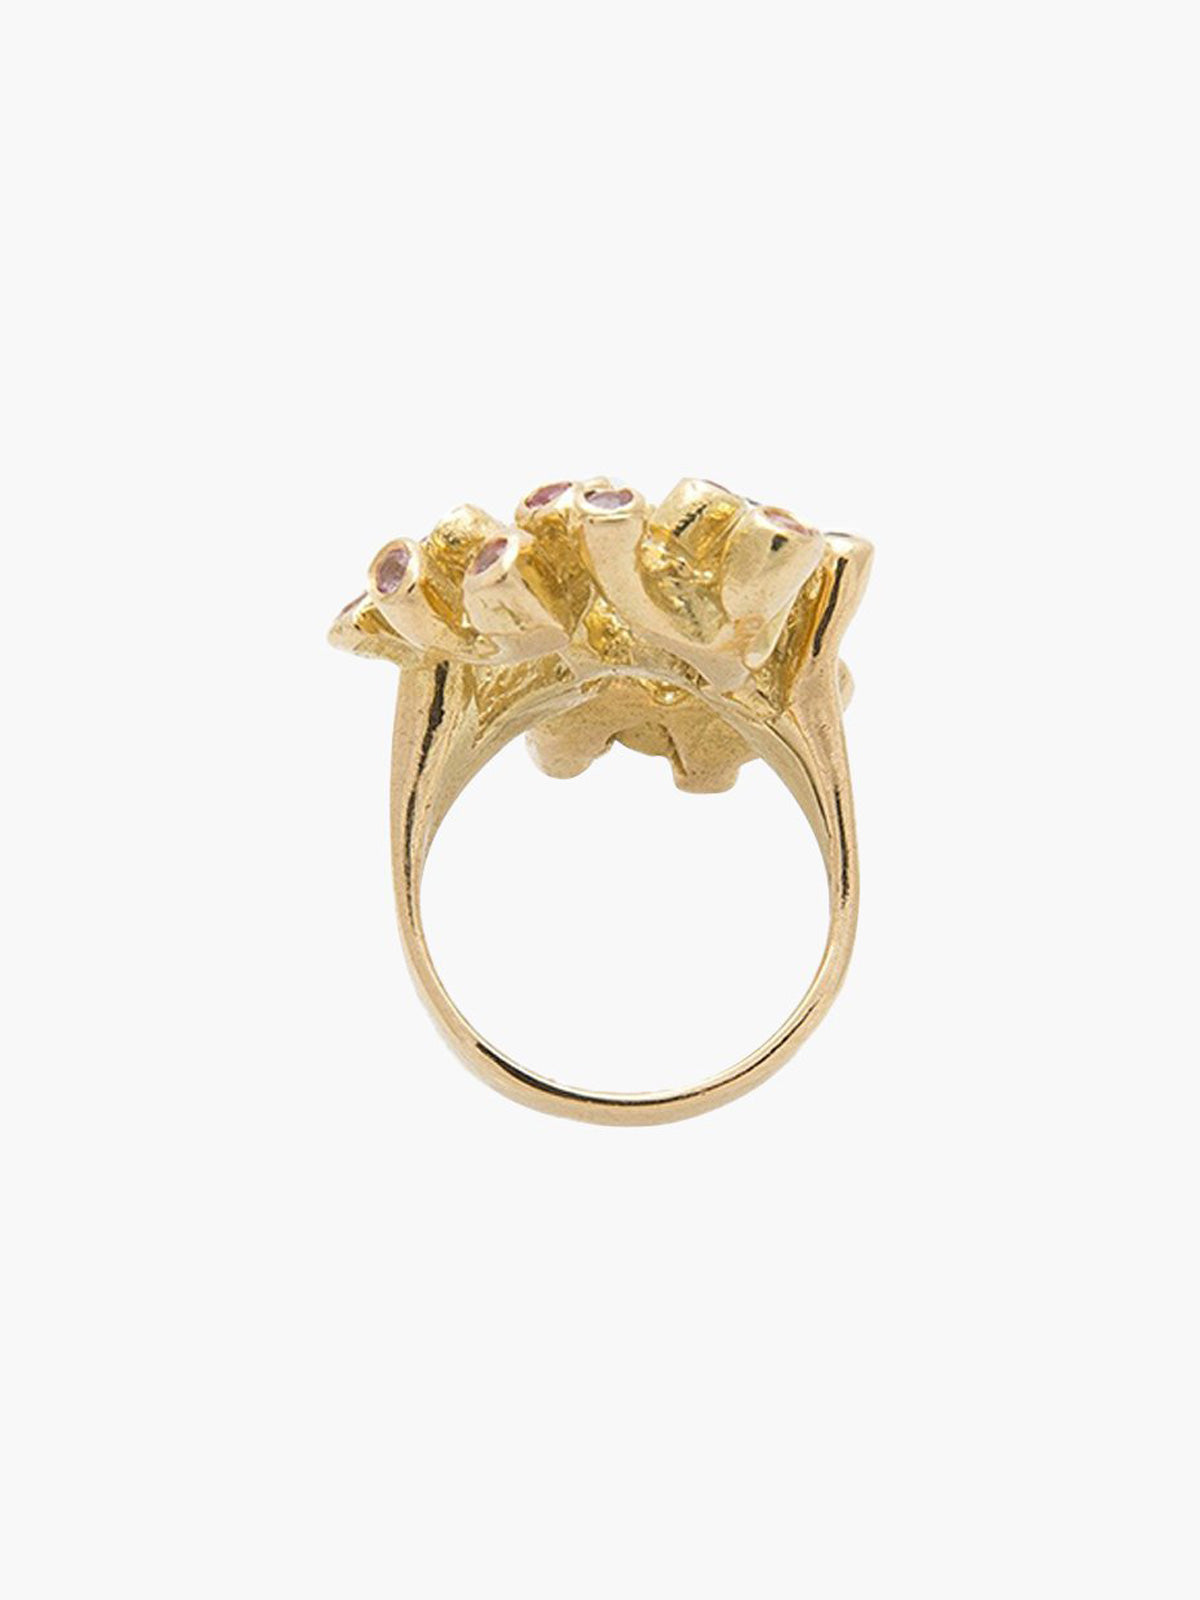 Large Sea Anemone Ring Large Sea Anemone Ring